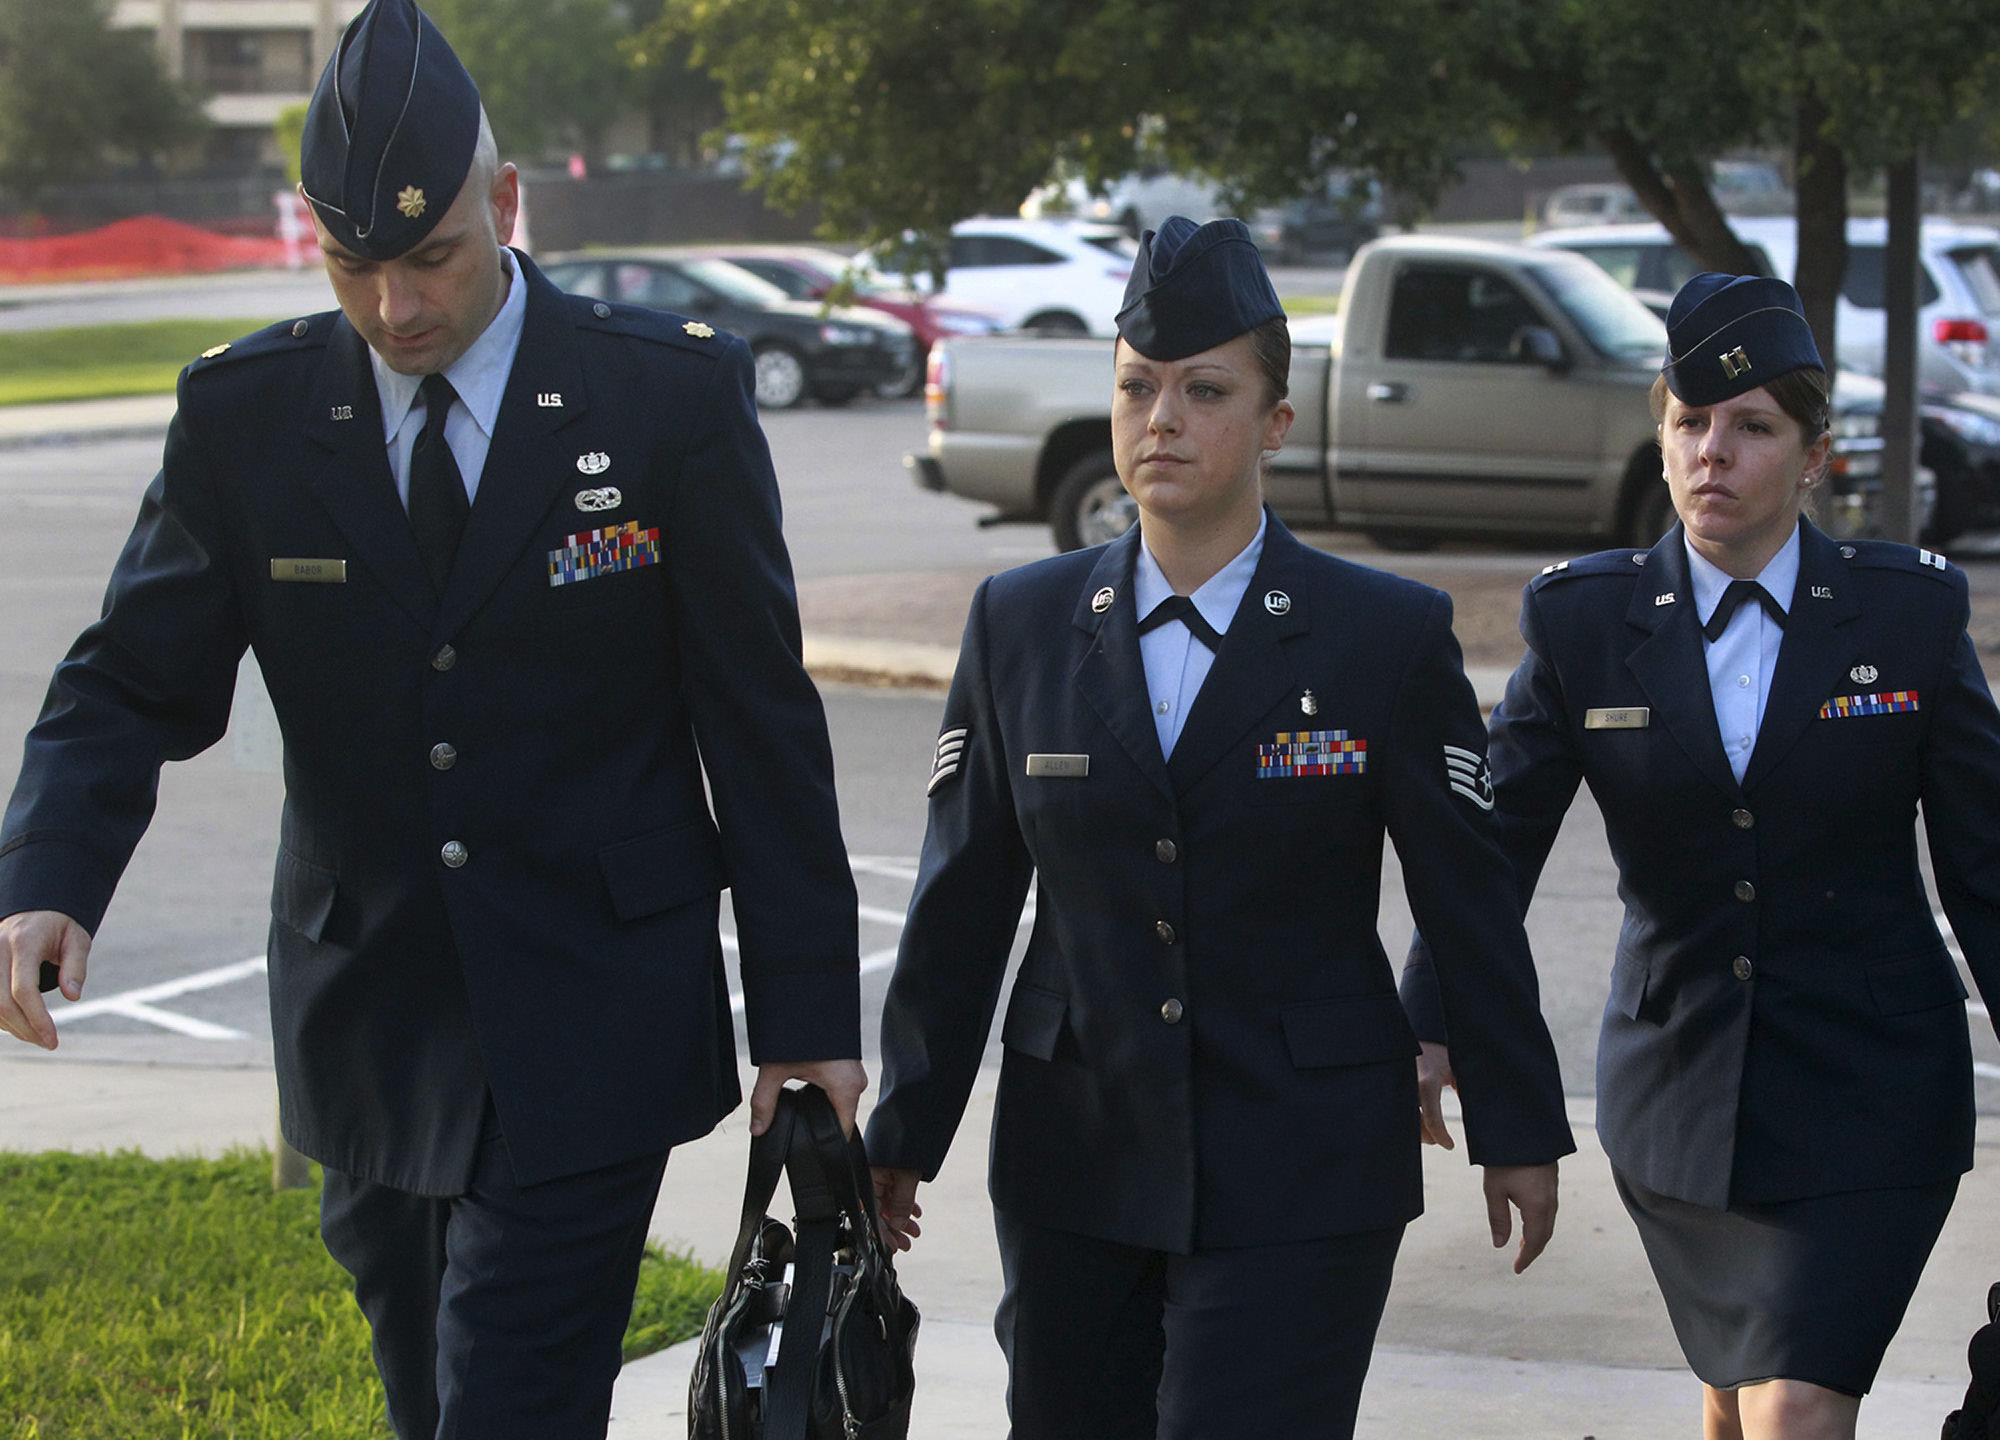 Female trainer guilty in Lackland scandal - San Antonio